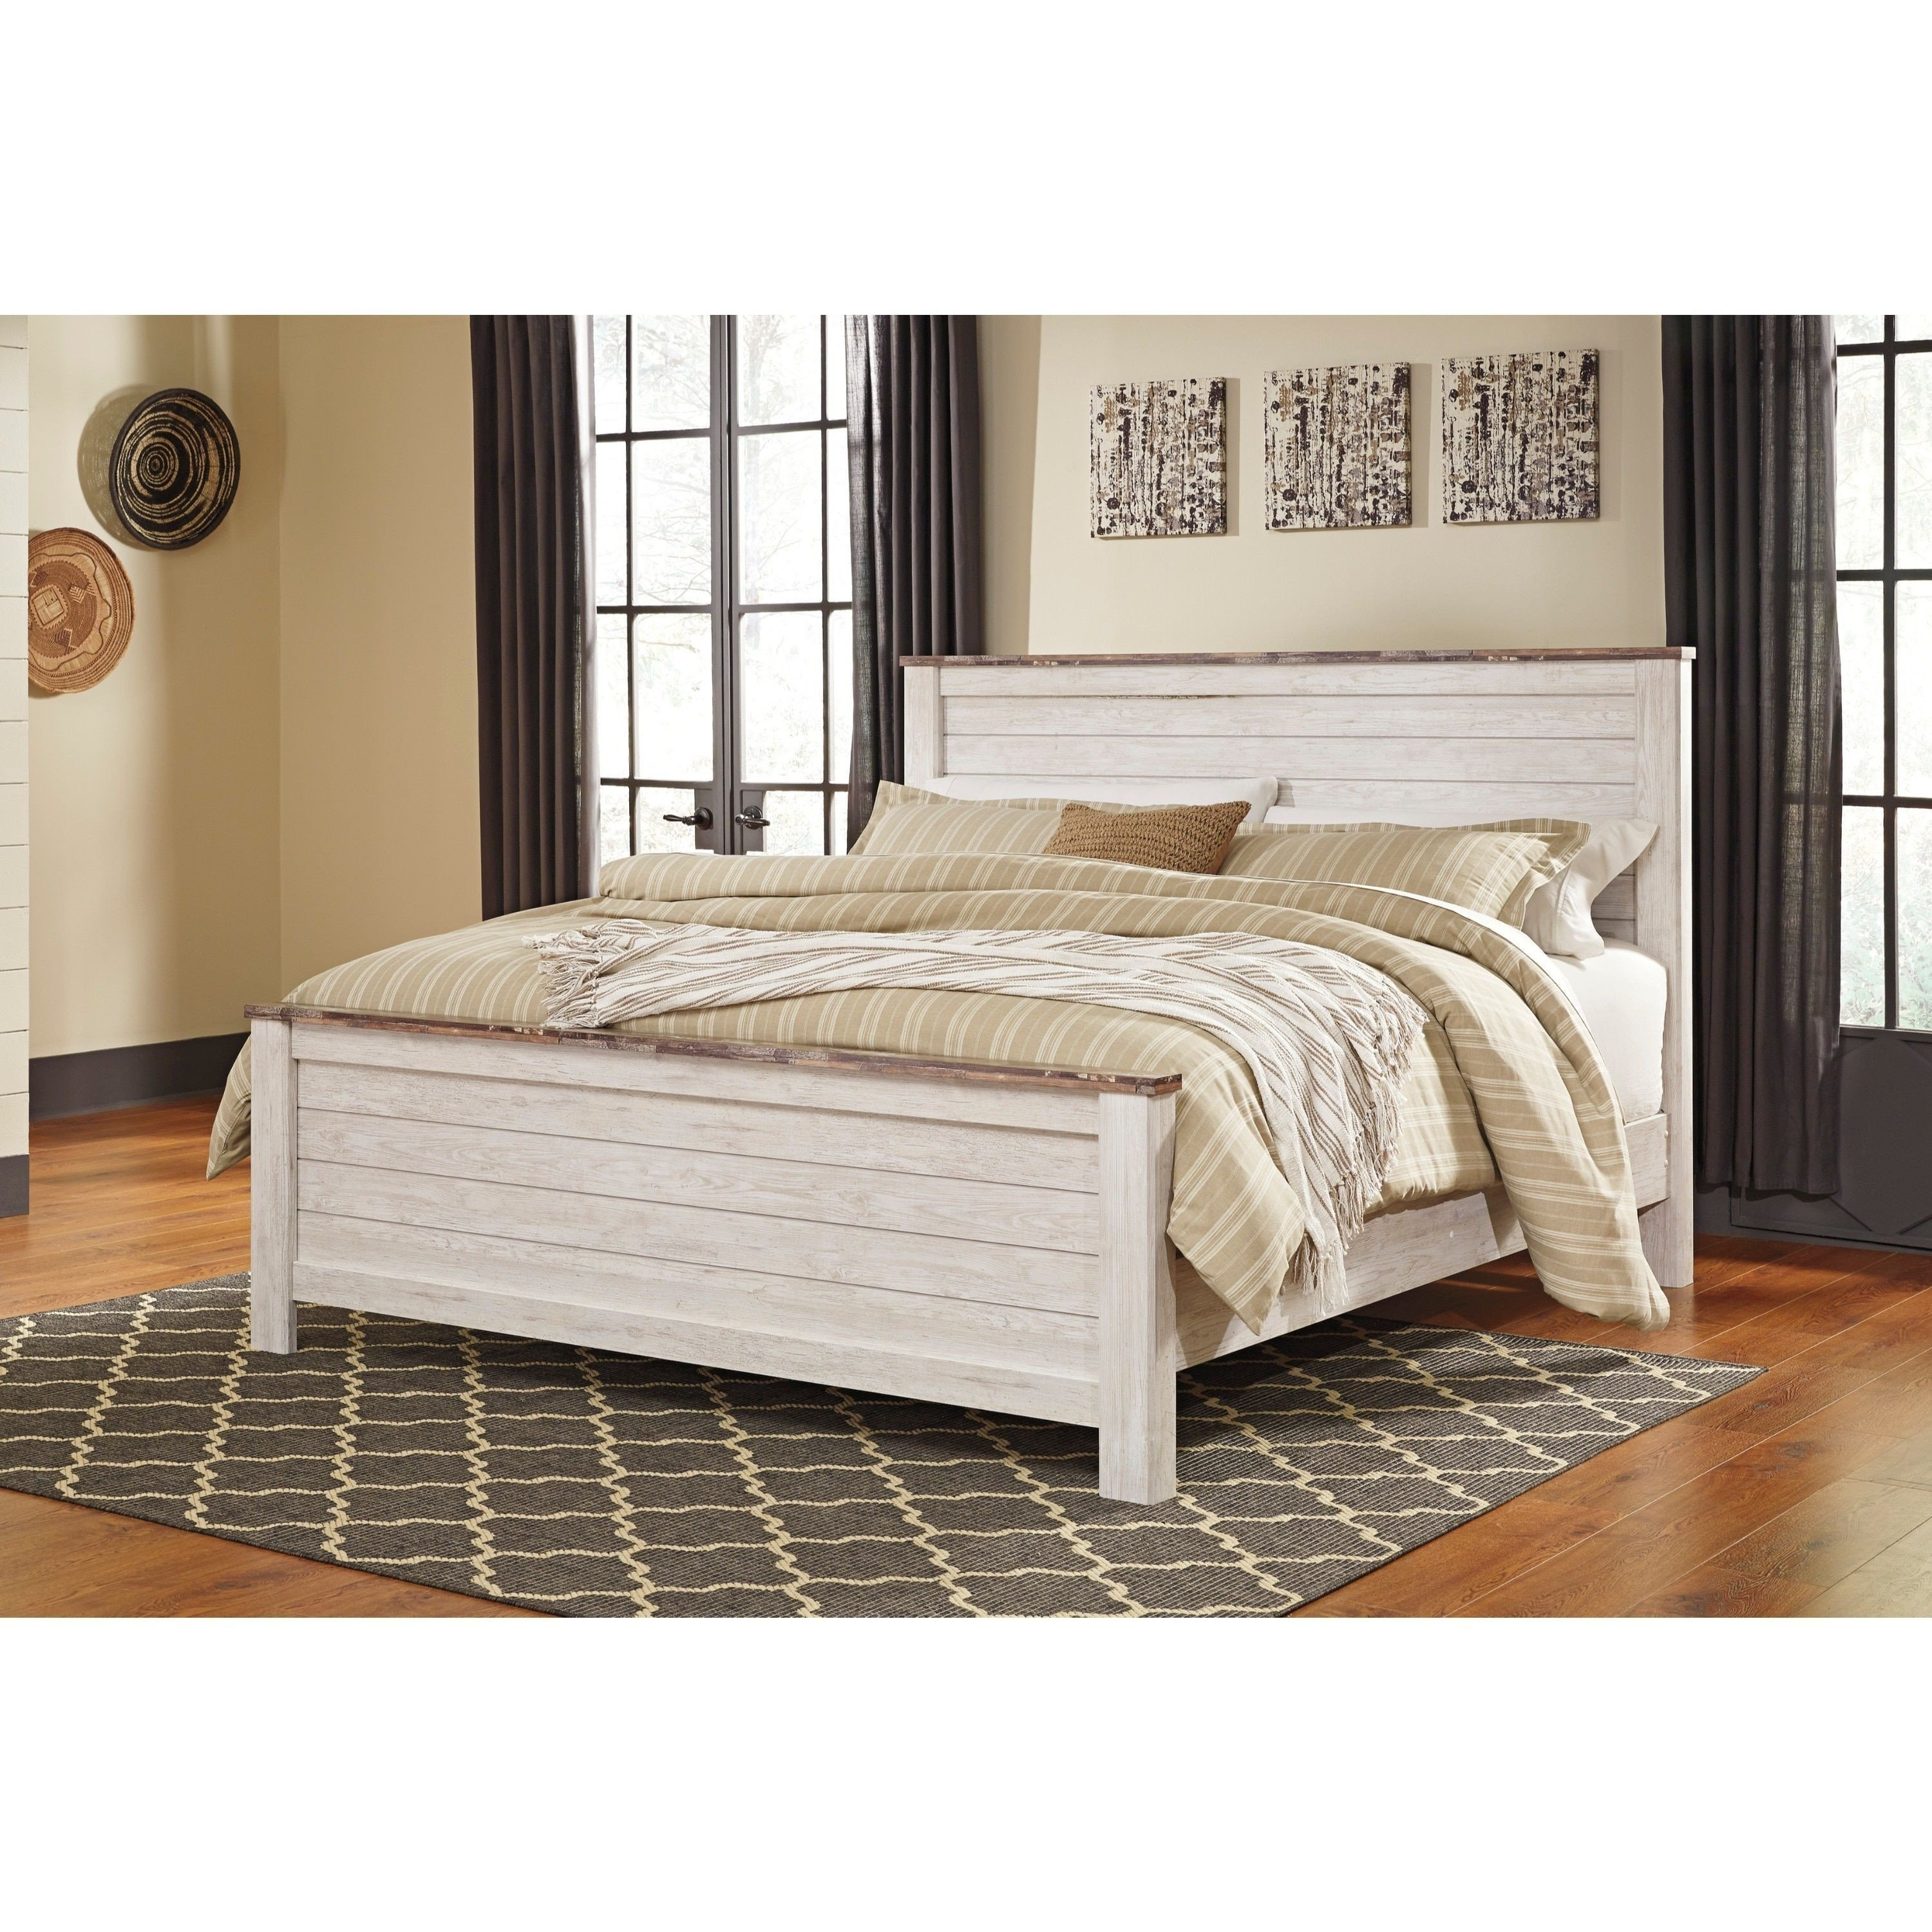 Cheap Bedroom Decor Online Shopping New Line Shopping Bedding Furniture Electronics Jewelry